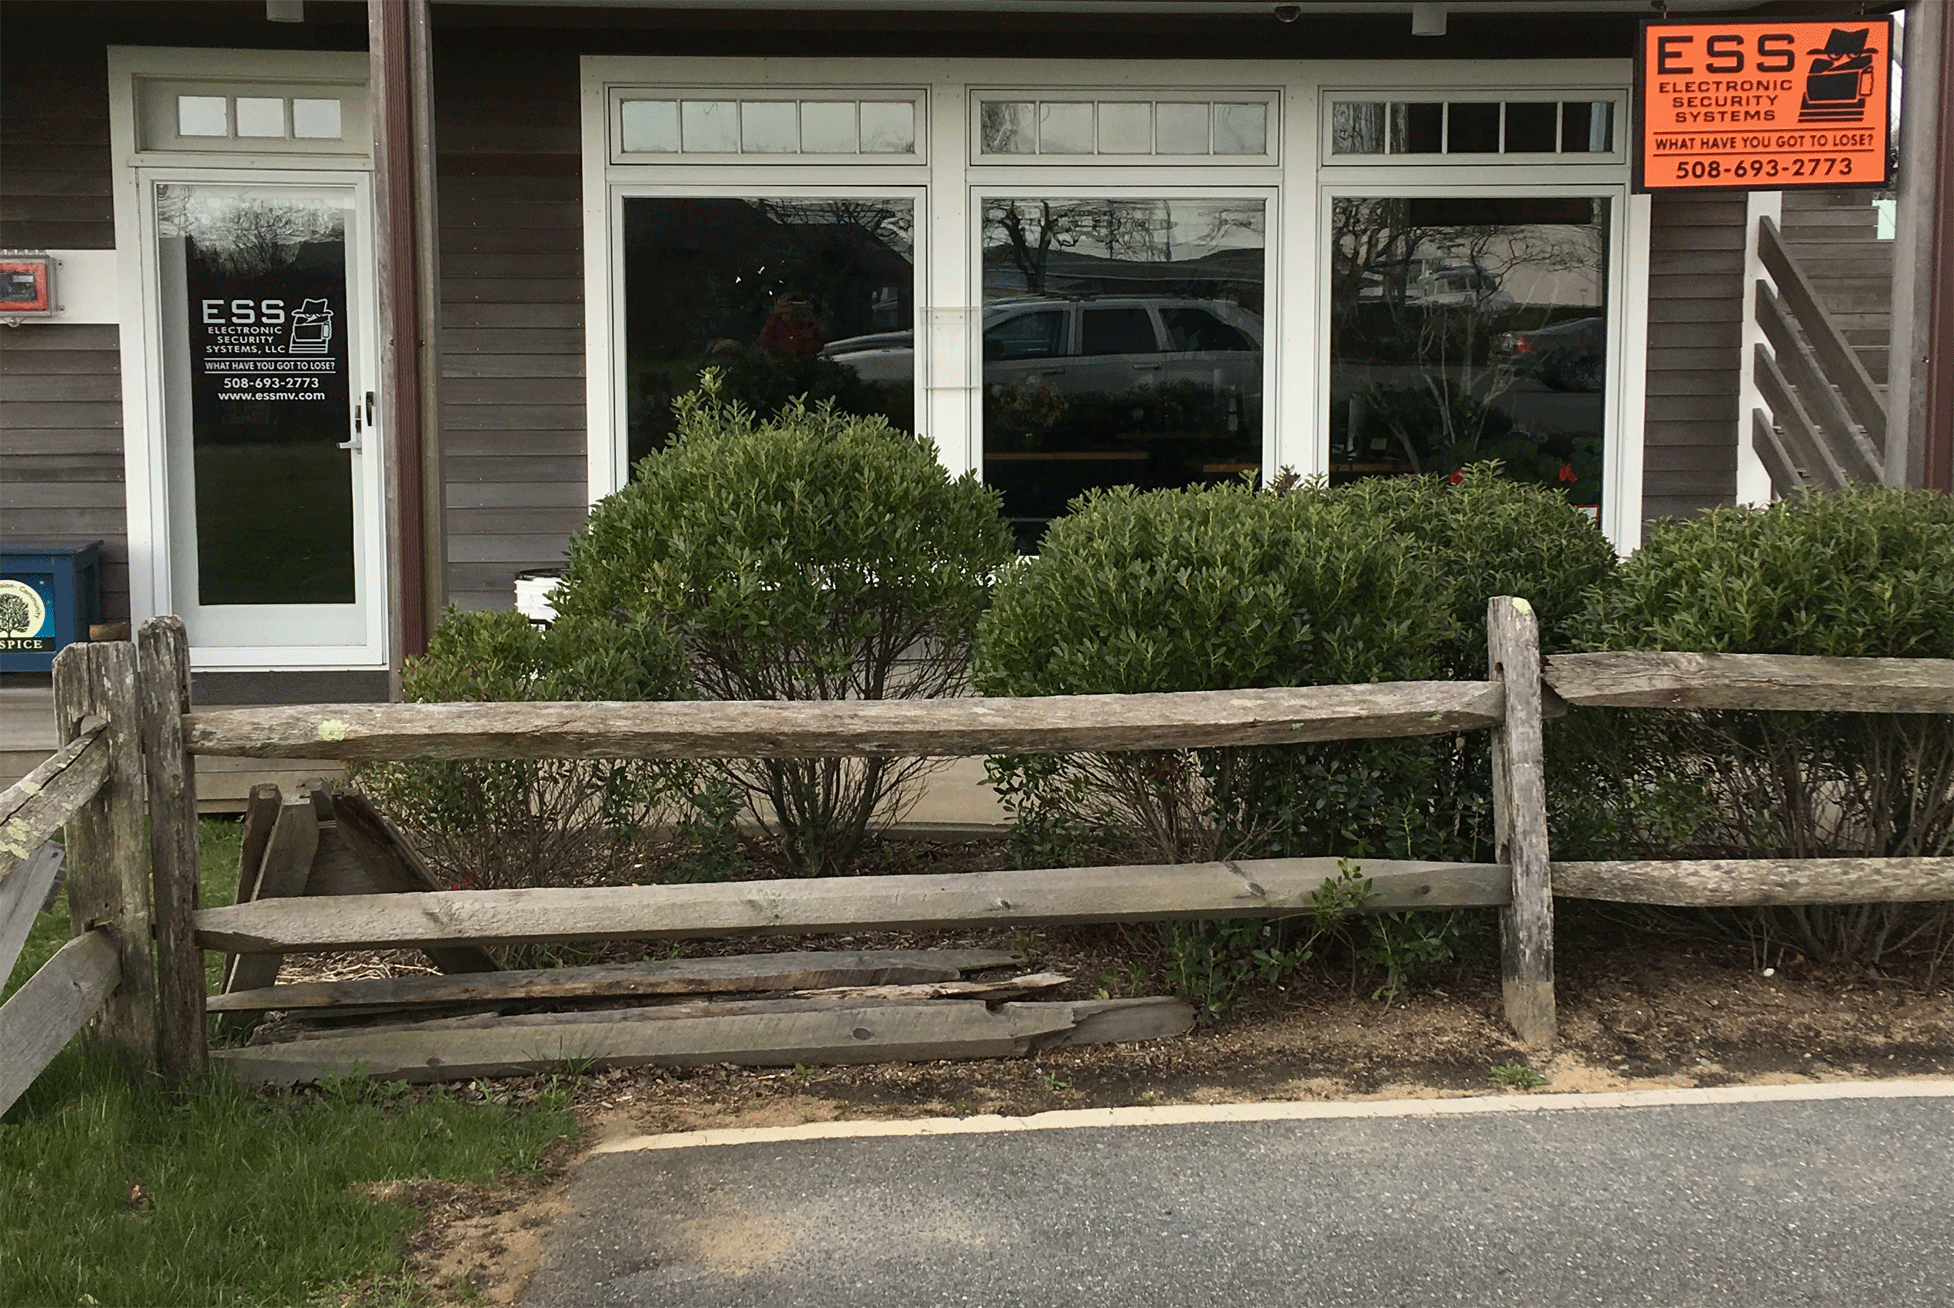 Electronic Security Systems Storefront, Tisbury, MA